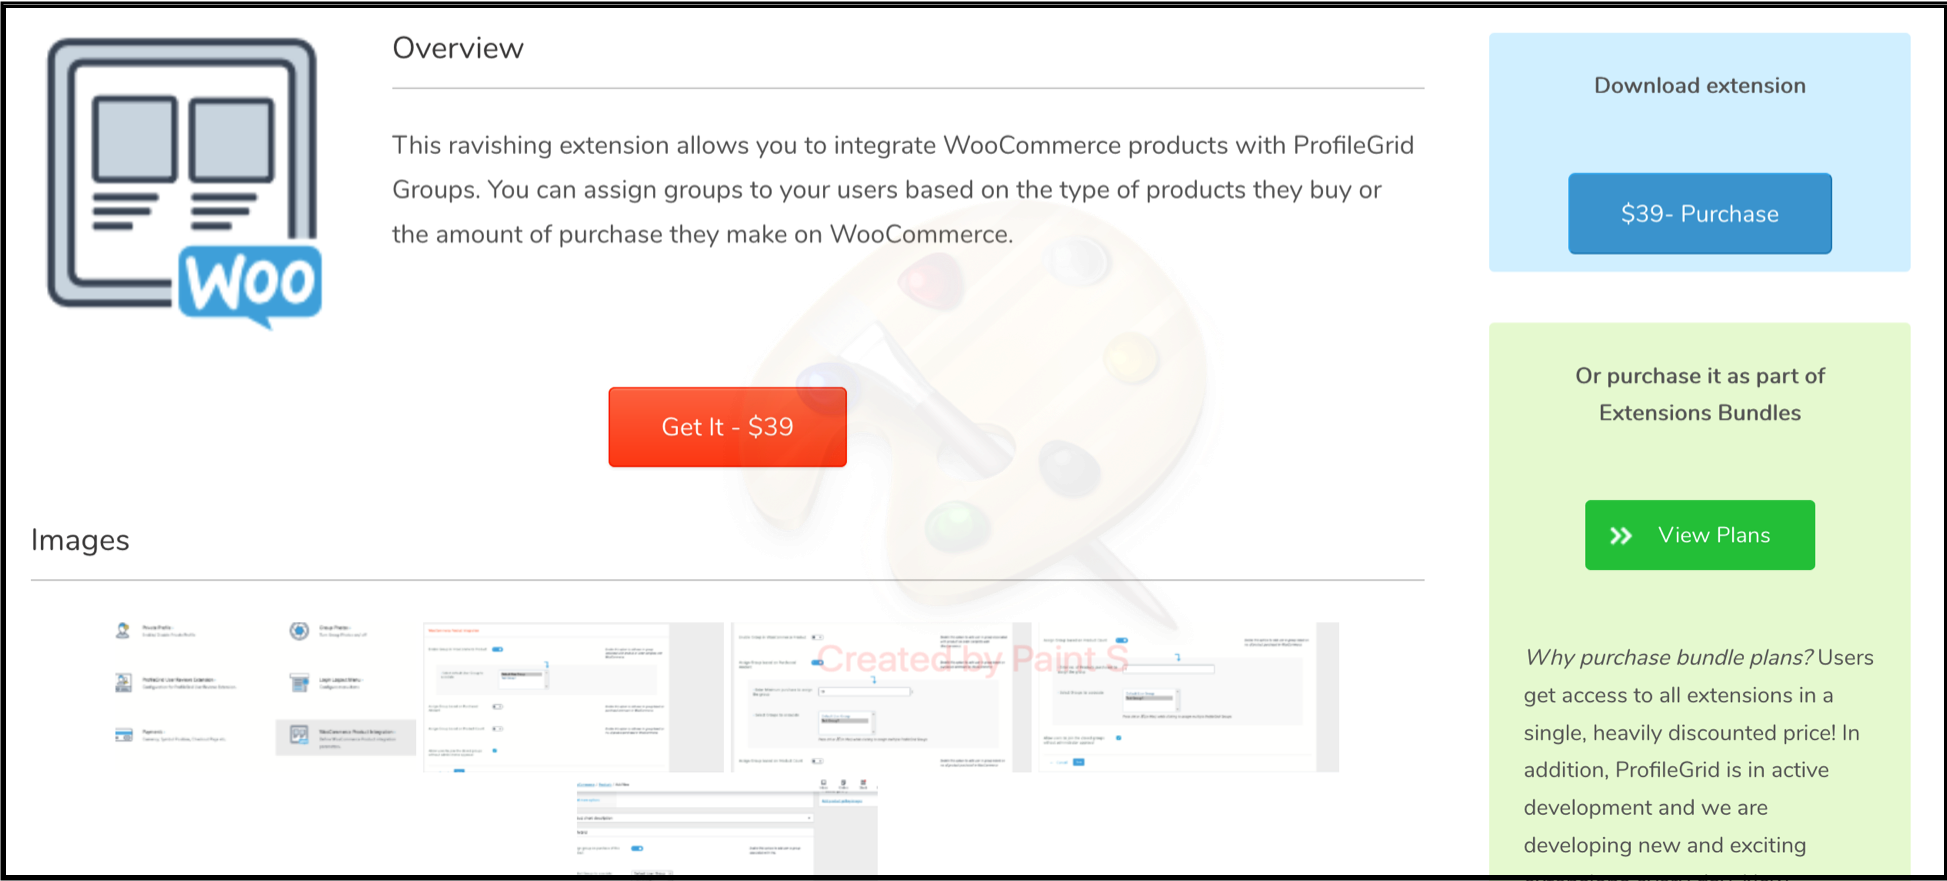 WooCommerce Product Integration Extension